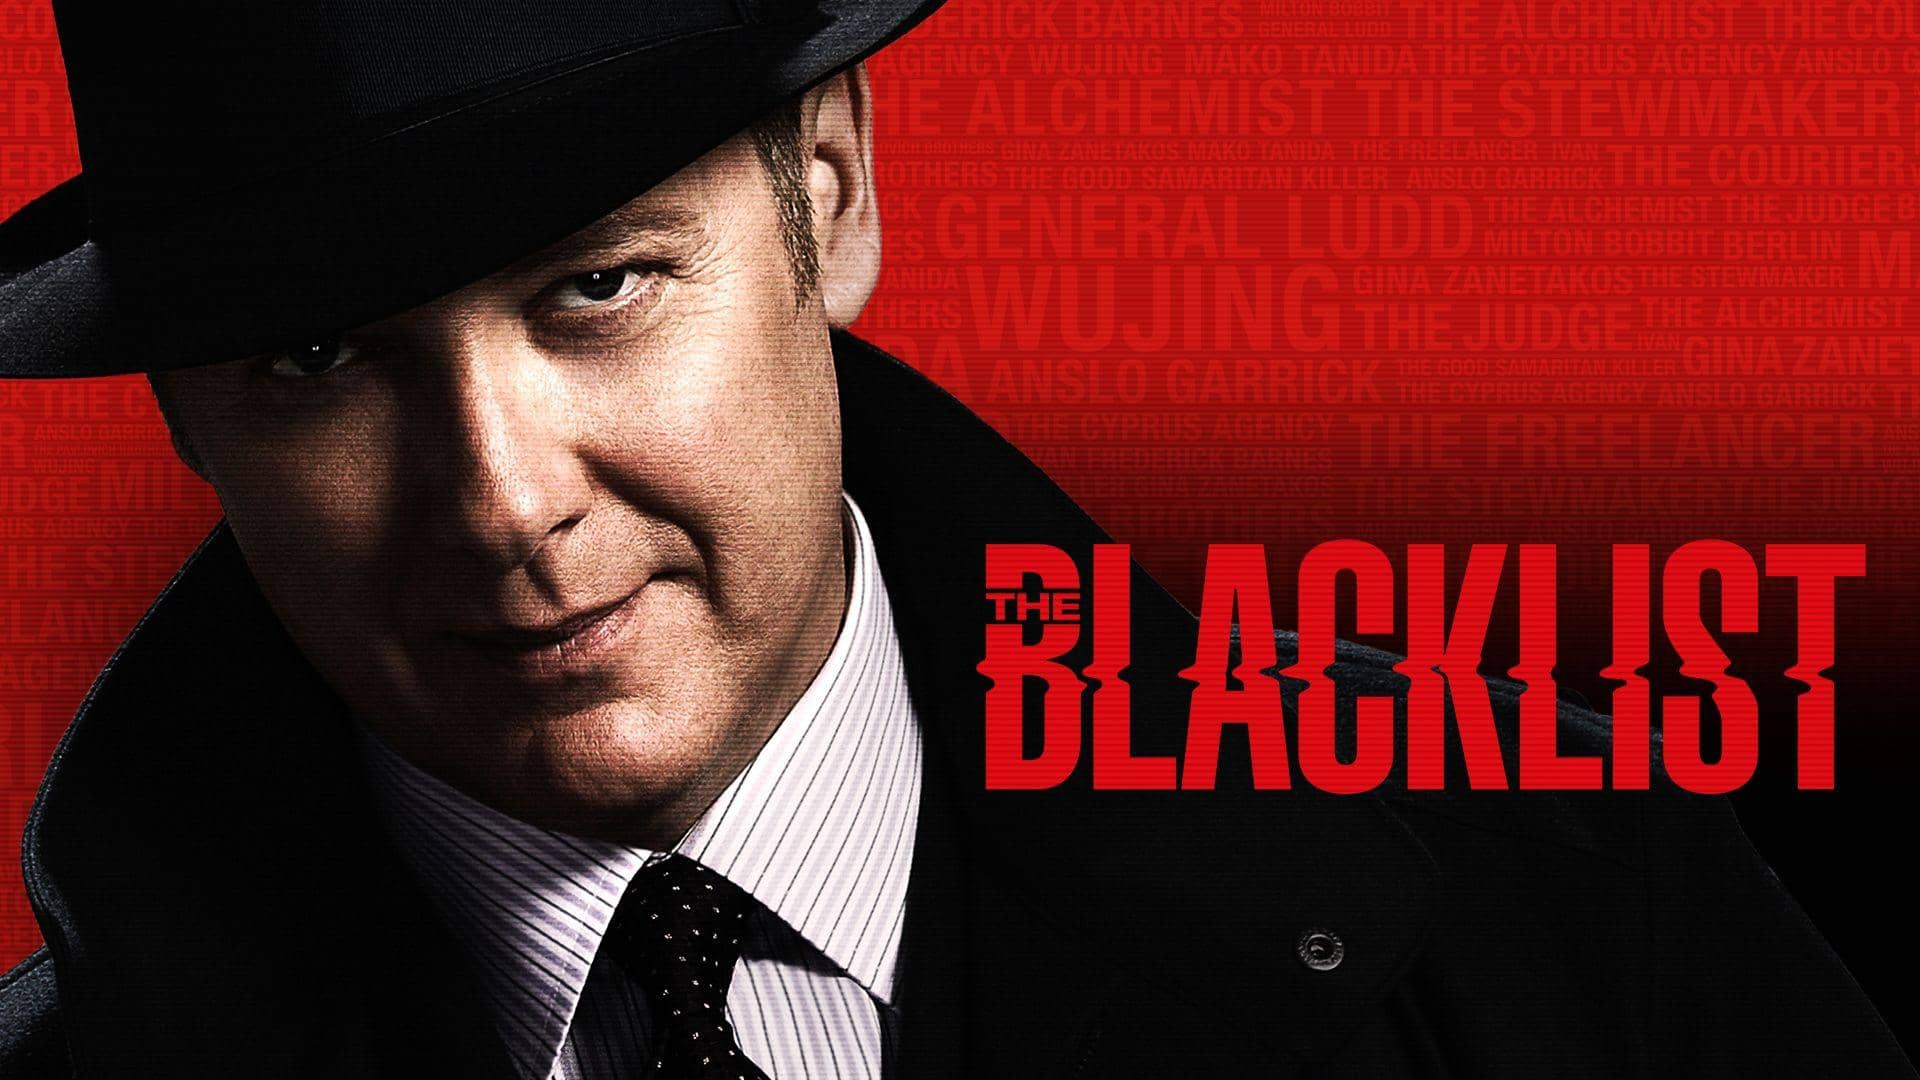 Top 10 Shows Like The Blacklist